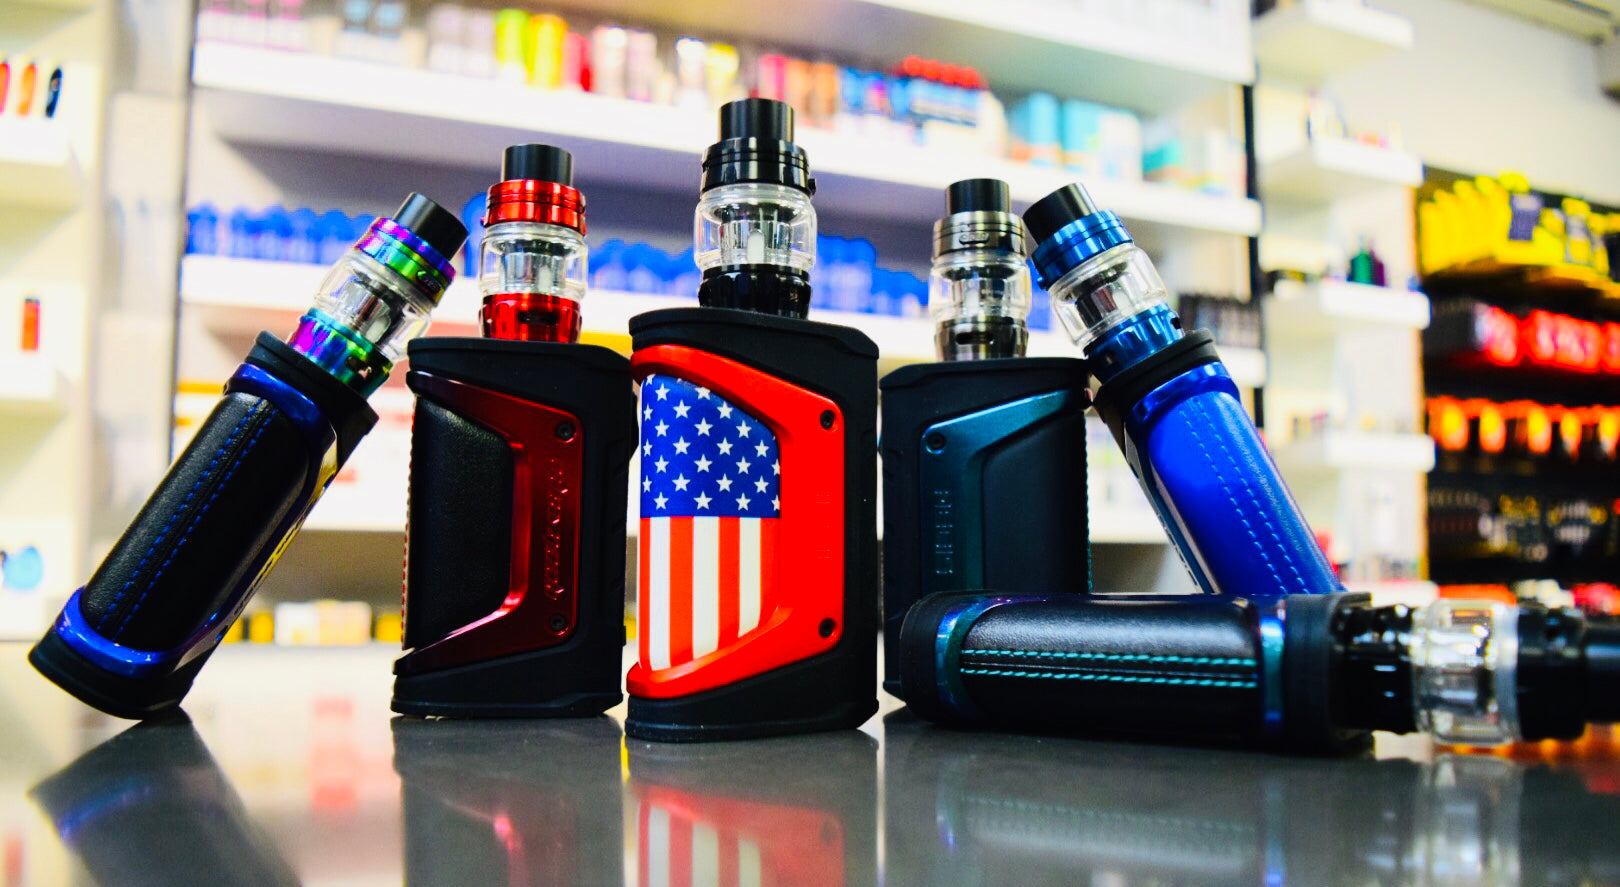 GEEK VAPE AEGIS LEGEND LIMITED EDITION